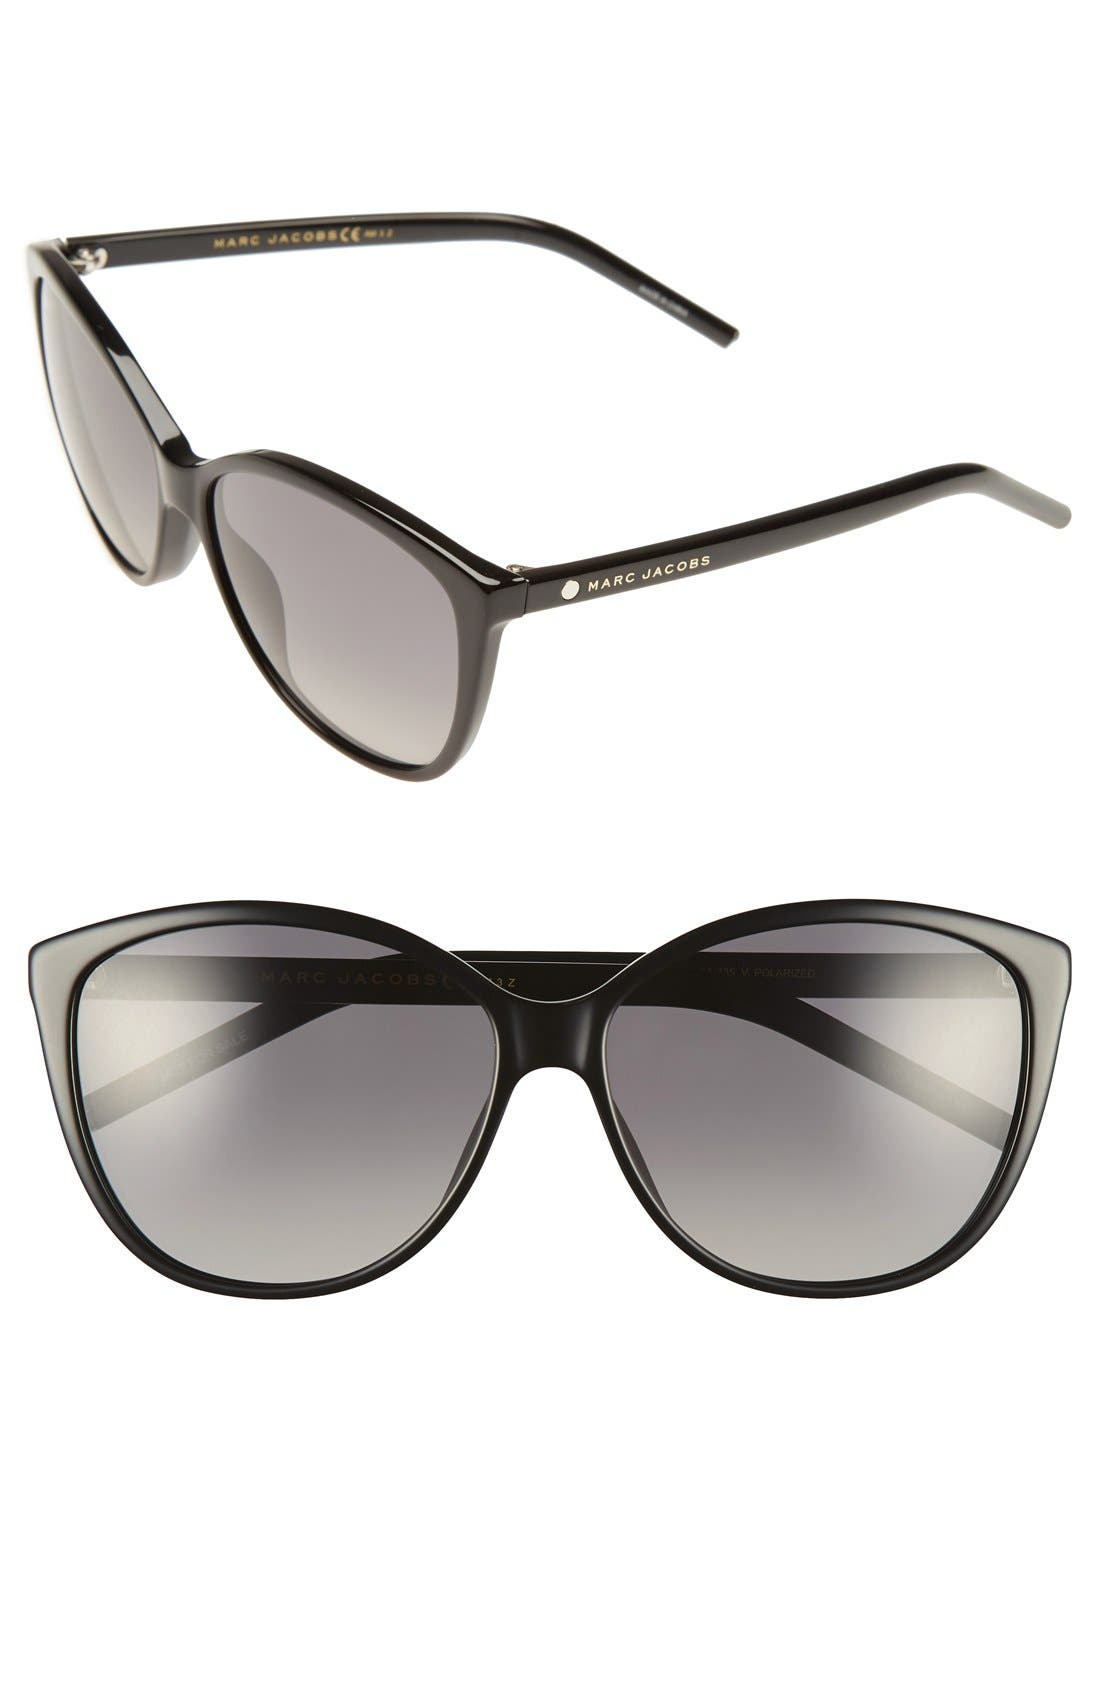 Main Image - MARC JACOBS 58mm Polarized Butterfly Sunglasses